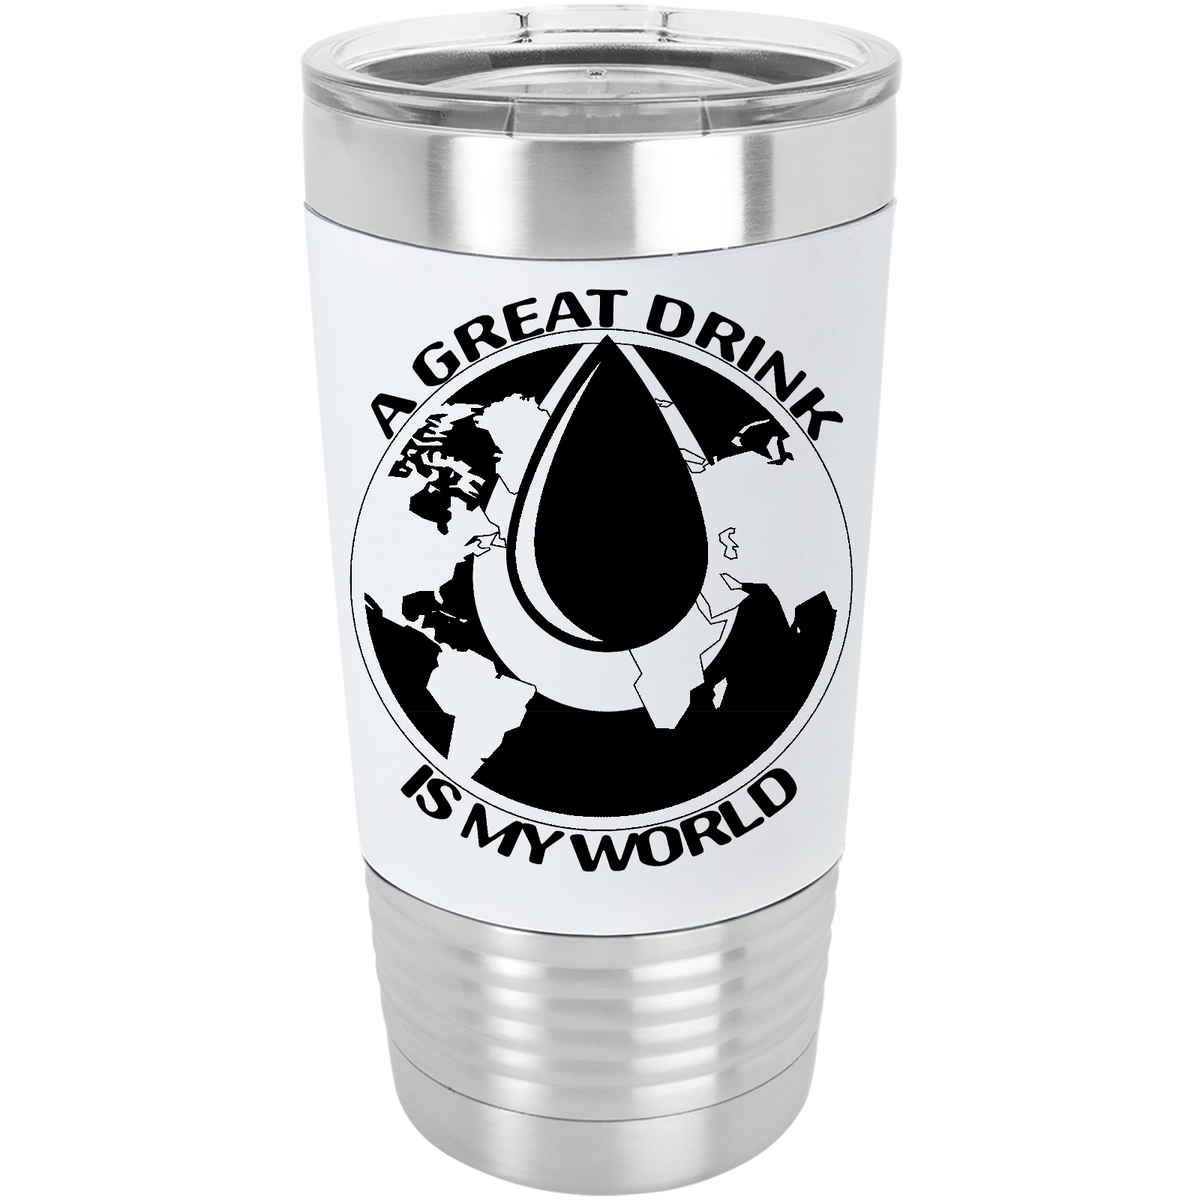 A great drink is my world, what's yours - 20oz. Silicone Grip Tumbler with Clear Lid